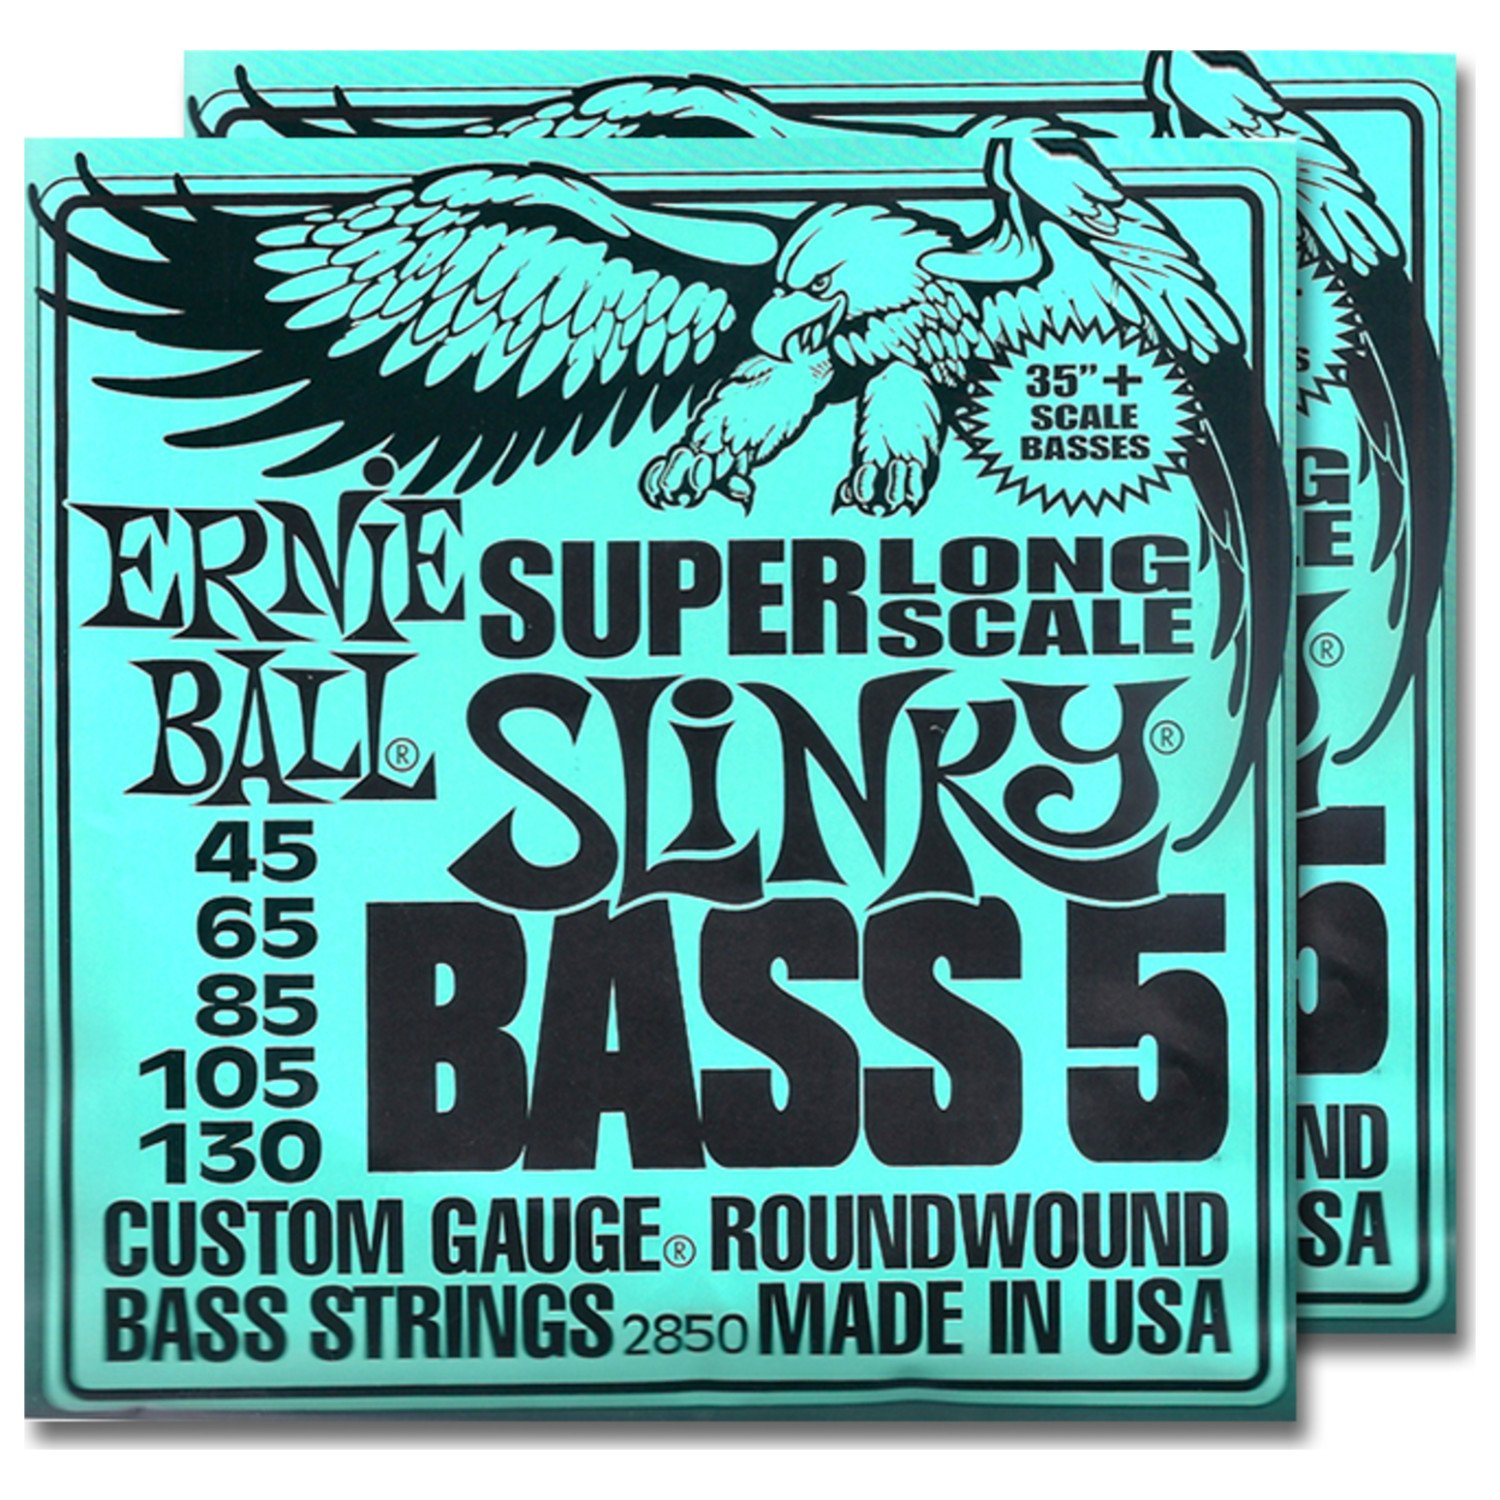 2 Sets of Ernie Ball 2850 5 String Slinky Super Long Scale Bass Strings